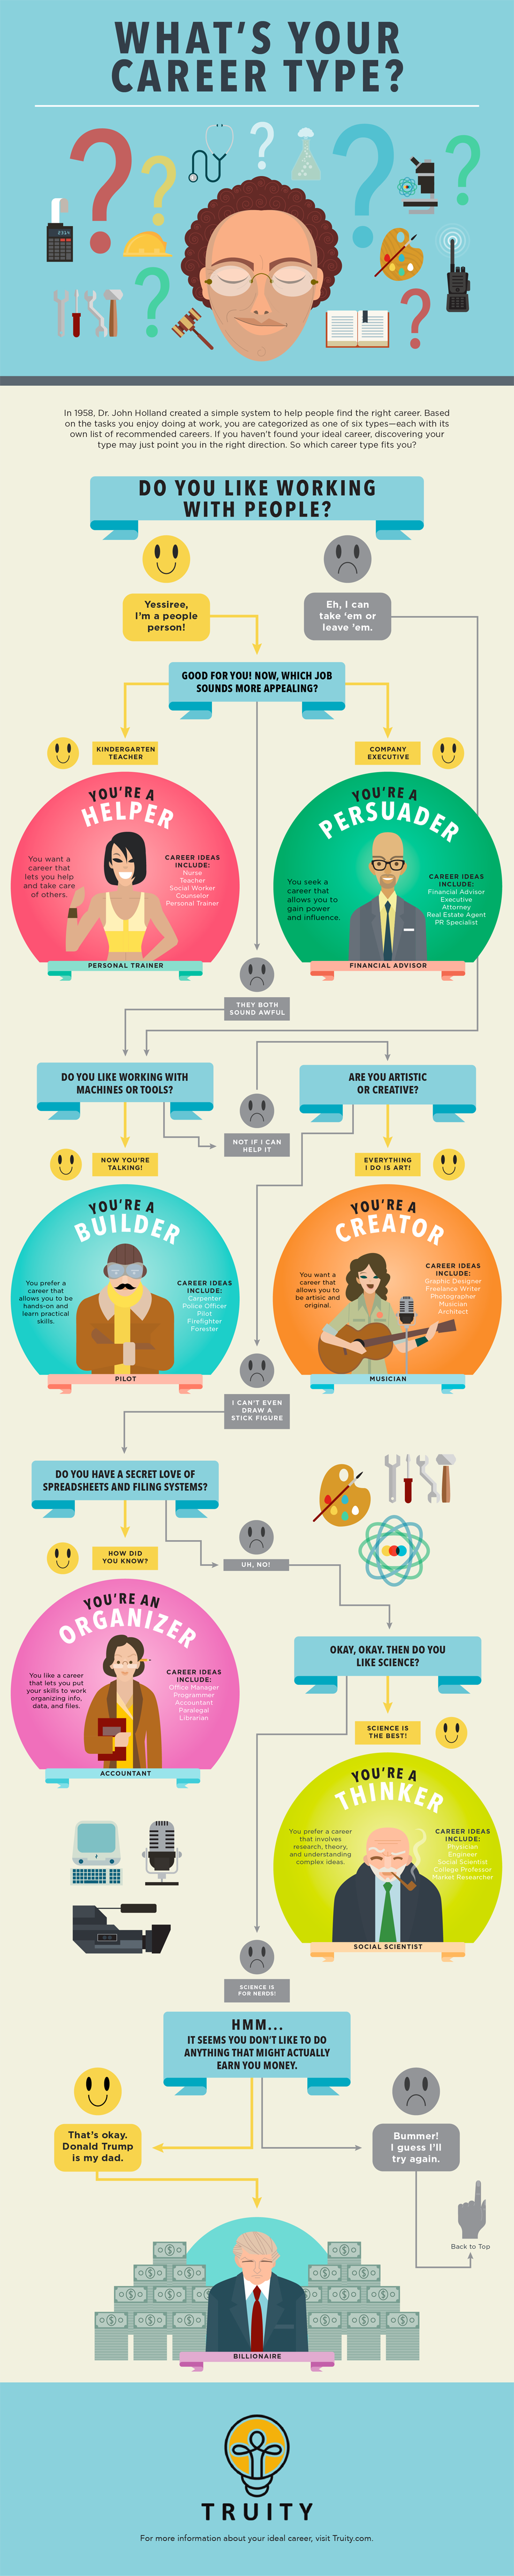 What's Your Career Type?